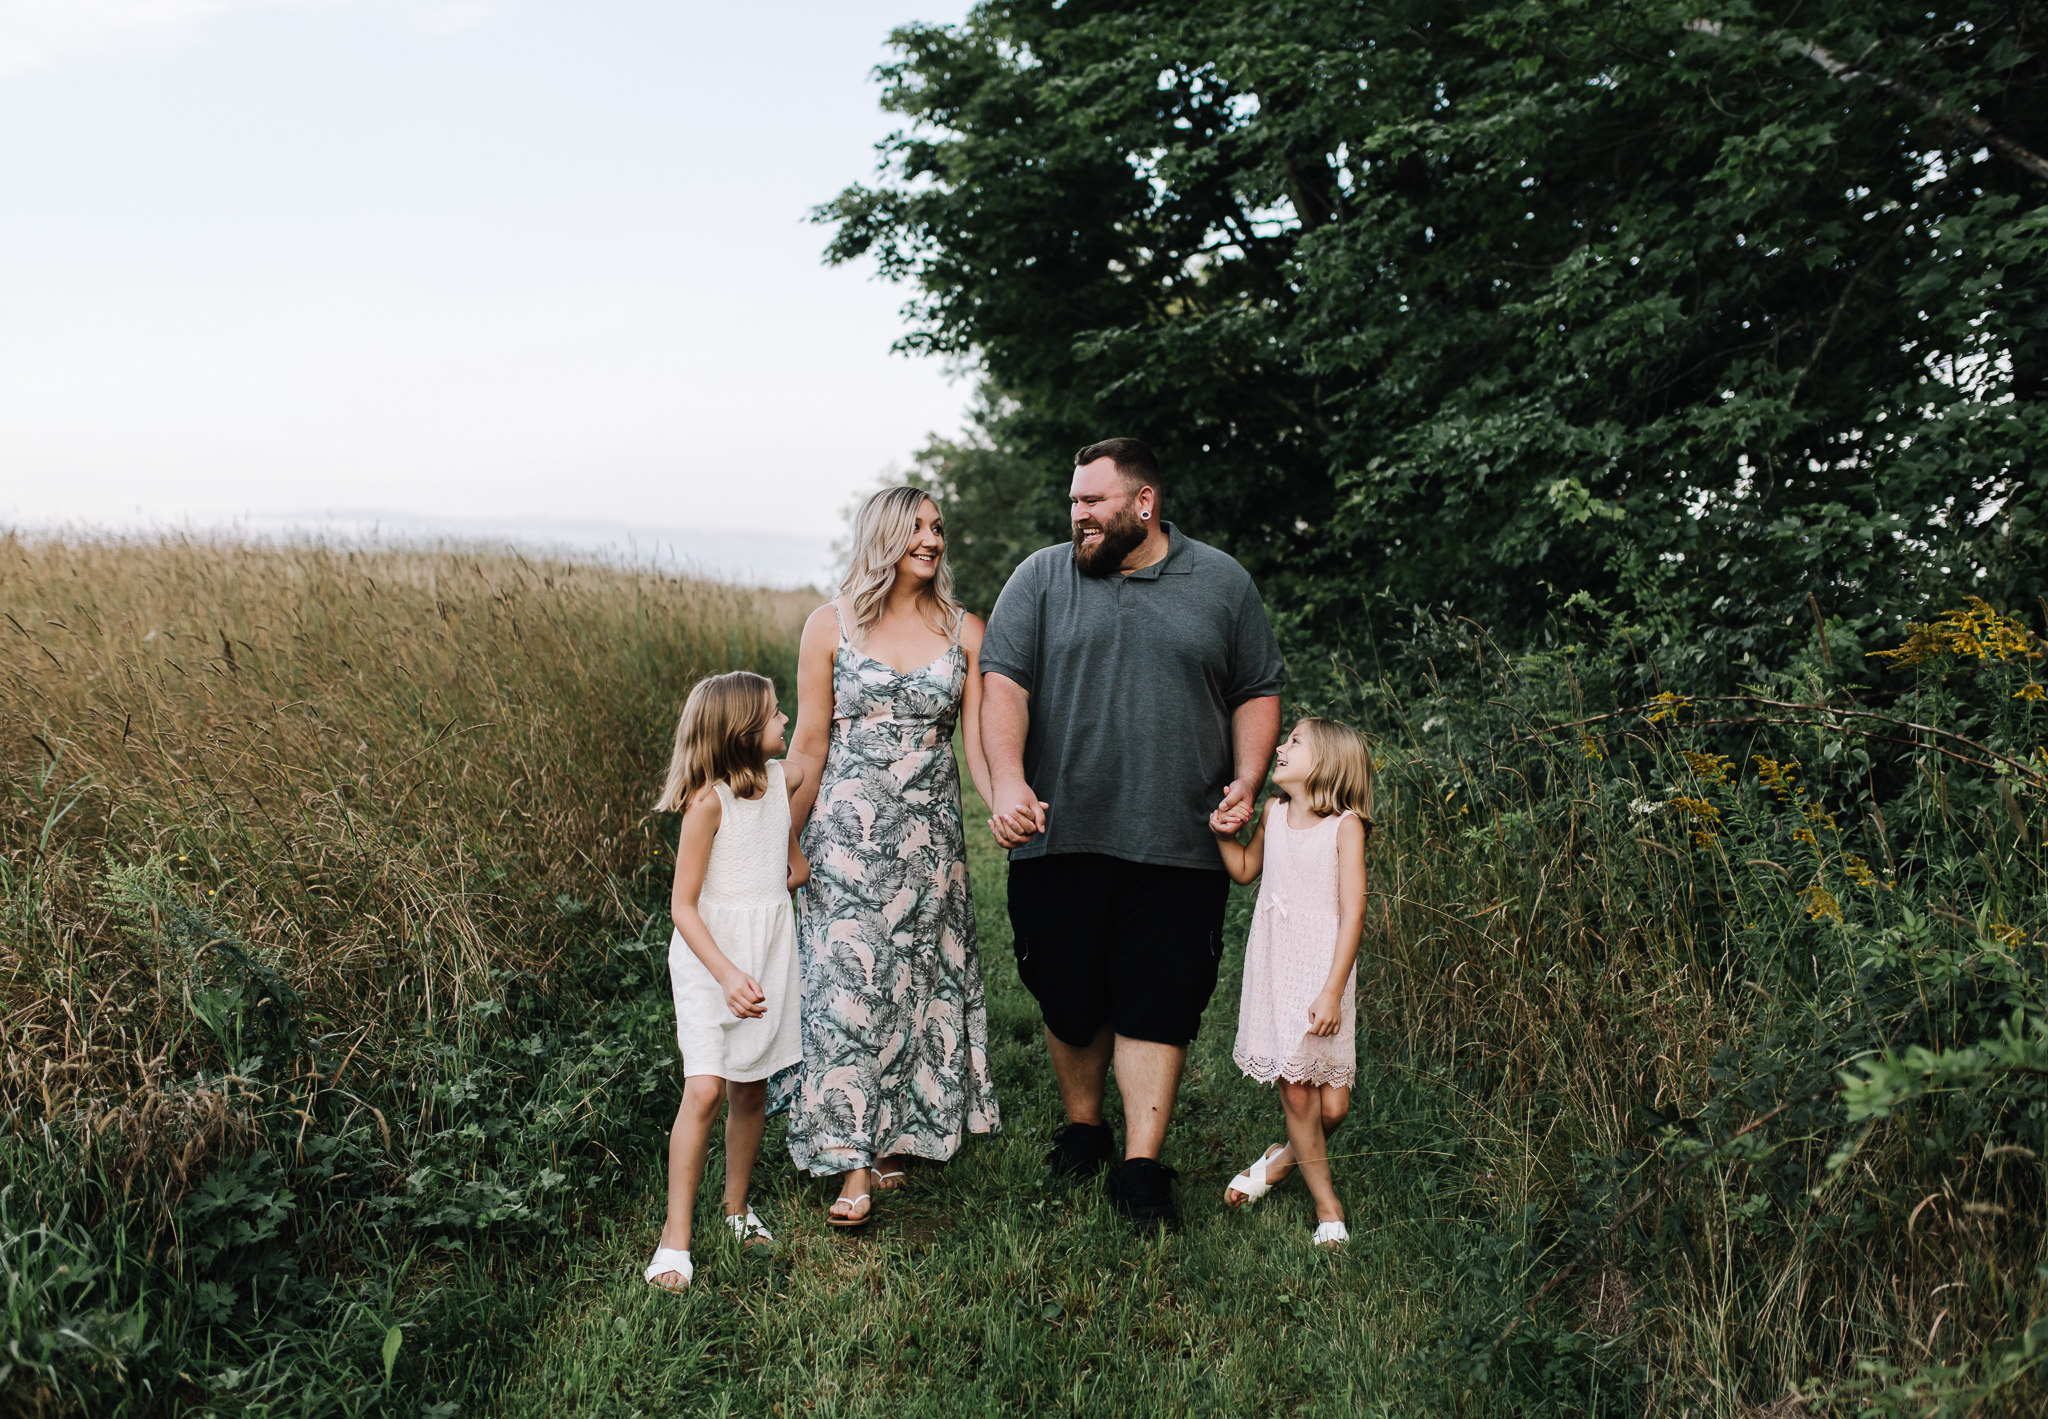 maine-family-together-field-photo-session.jpg